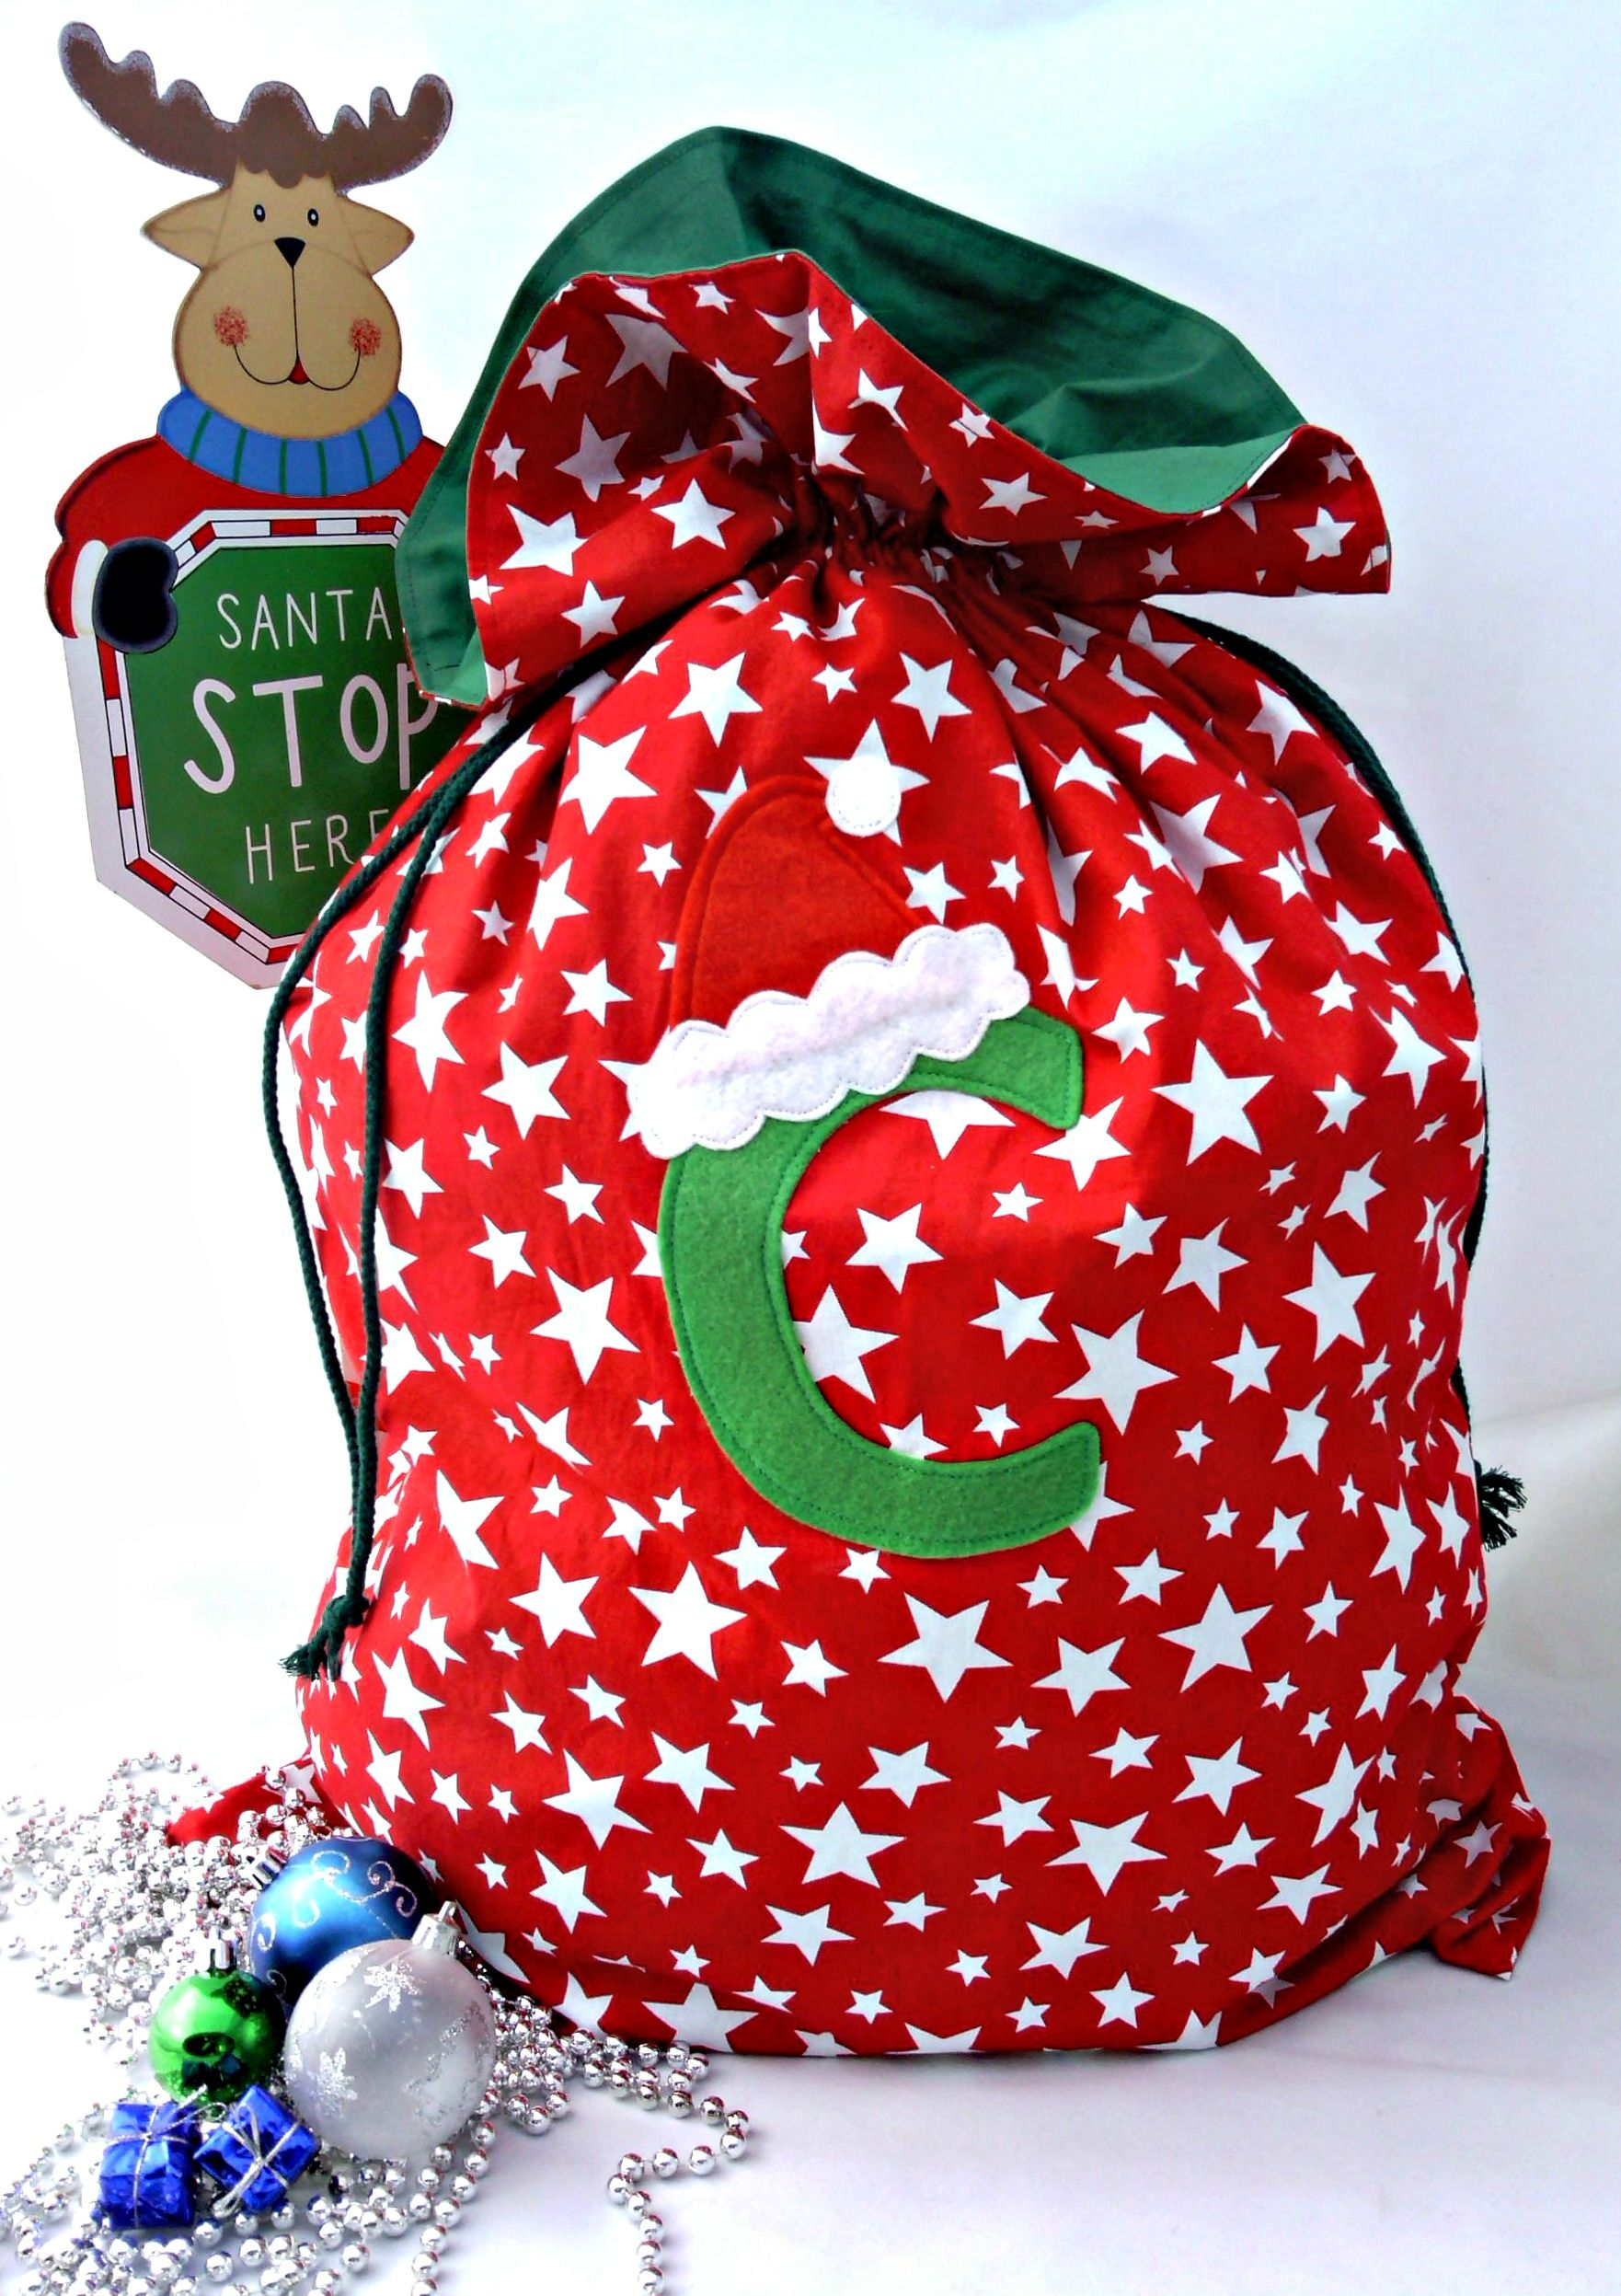 These gorgeous PERSONALISED Christmas Sacks are sure to bring squeals of delight from your child this Christmas. Made from Cotton fabric, fully lined for extra strength and durability it is sure to hold those special gifts. It features a double drawstring closure, felt initial and co-ordinating santa hat. A perfect gift that will be treasured for years to come. 50cm wide x 60cm tall (up to drawstring closure)